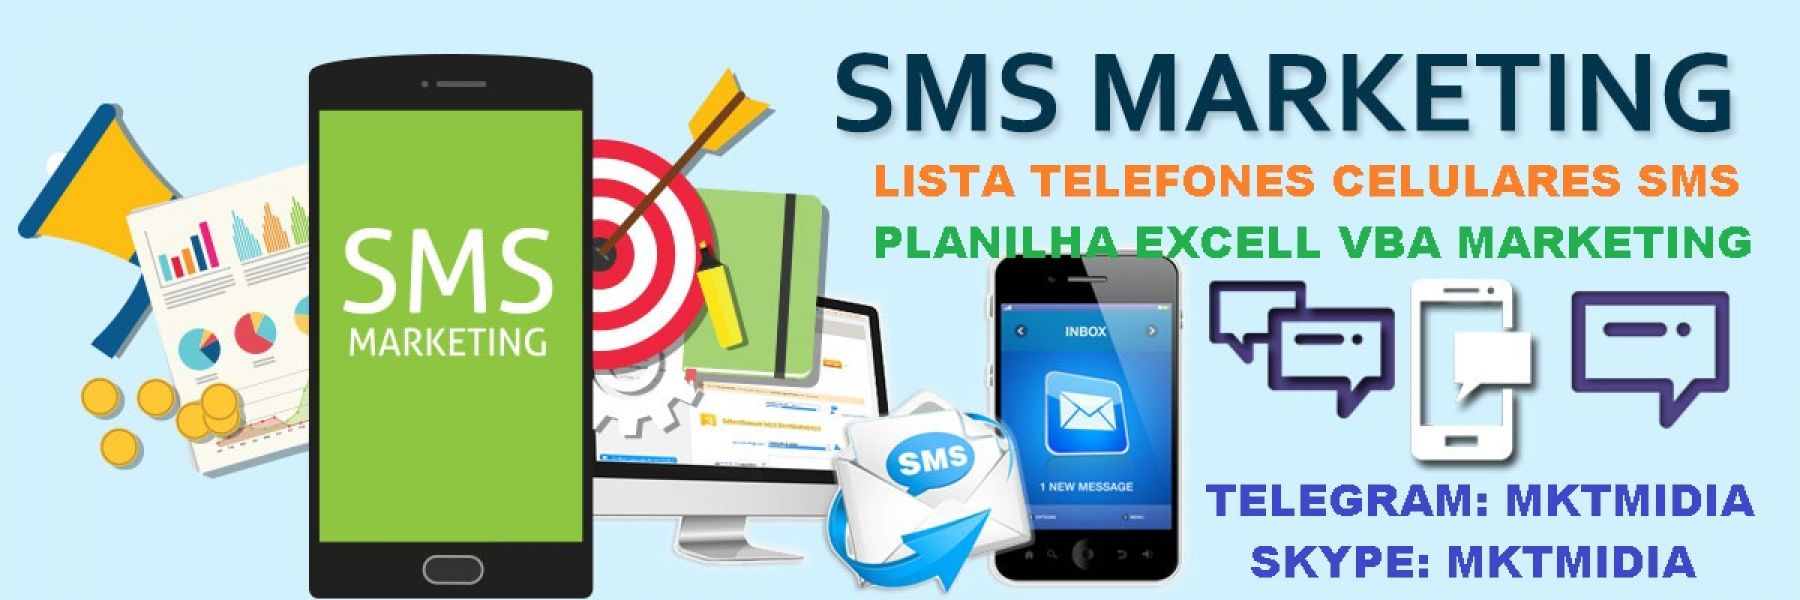 Lista Telefones Celulares Sms Marketing